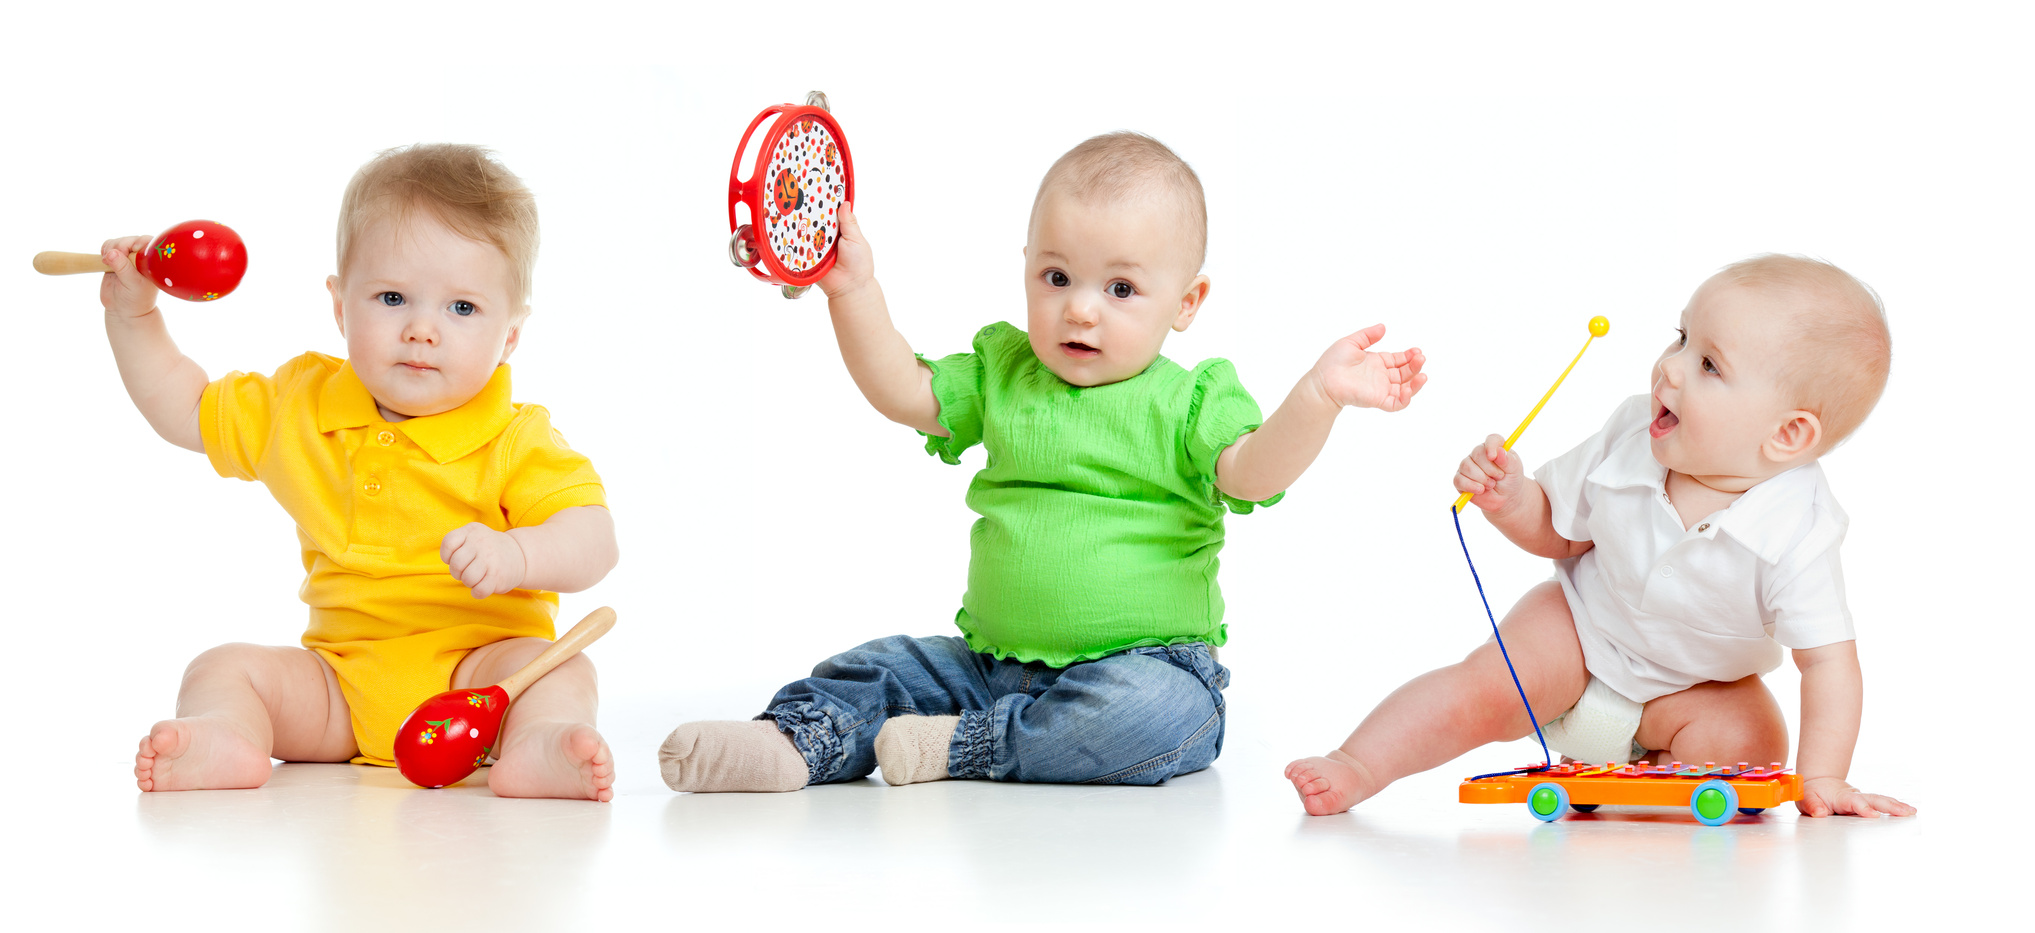 Children playing with musical toys isolated on white background